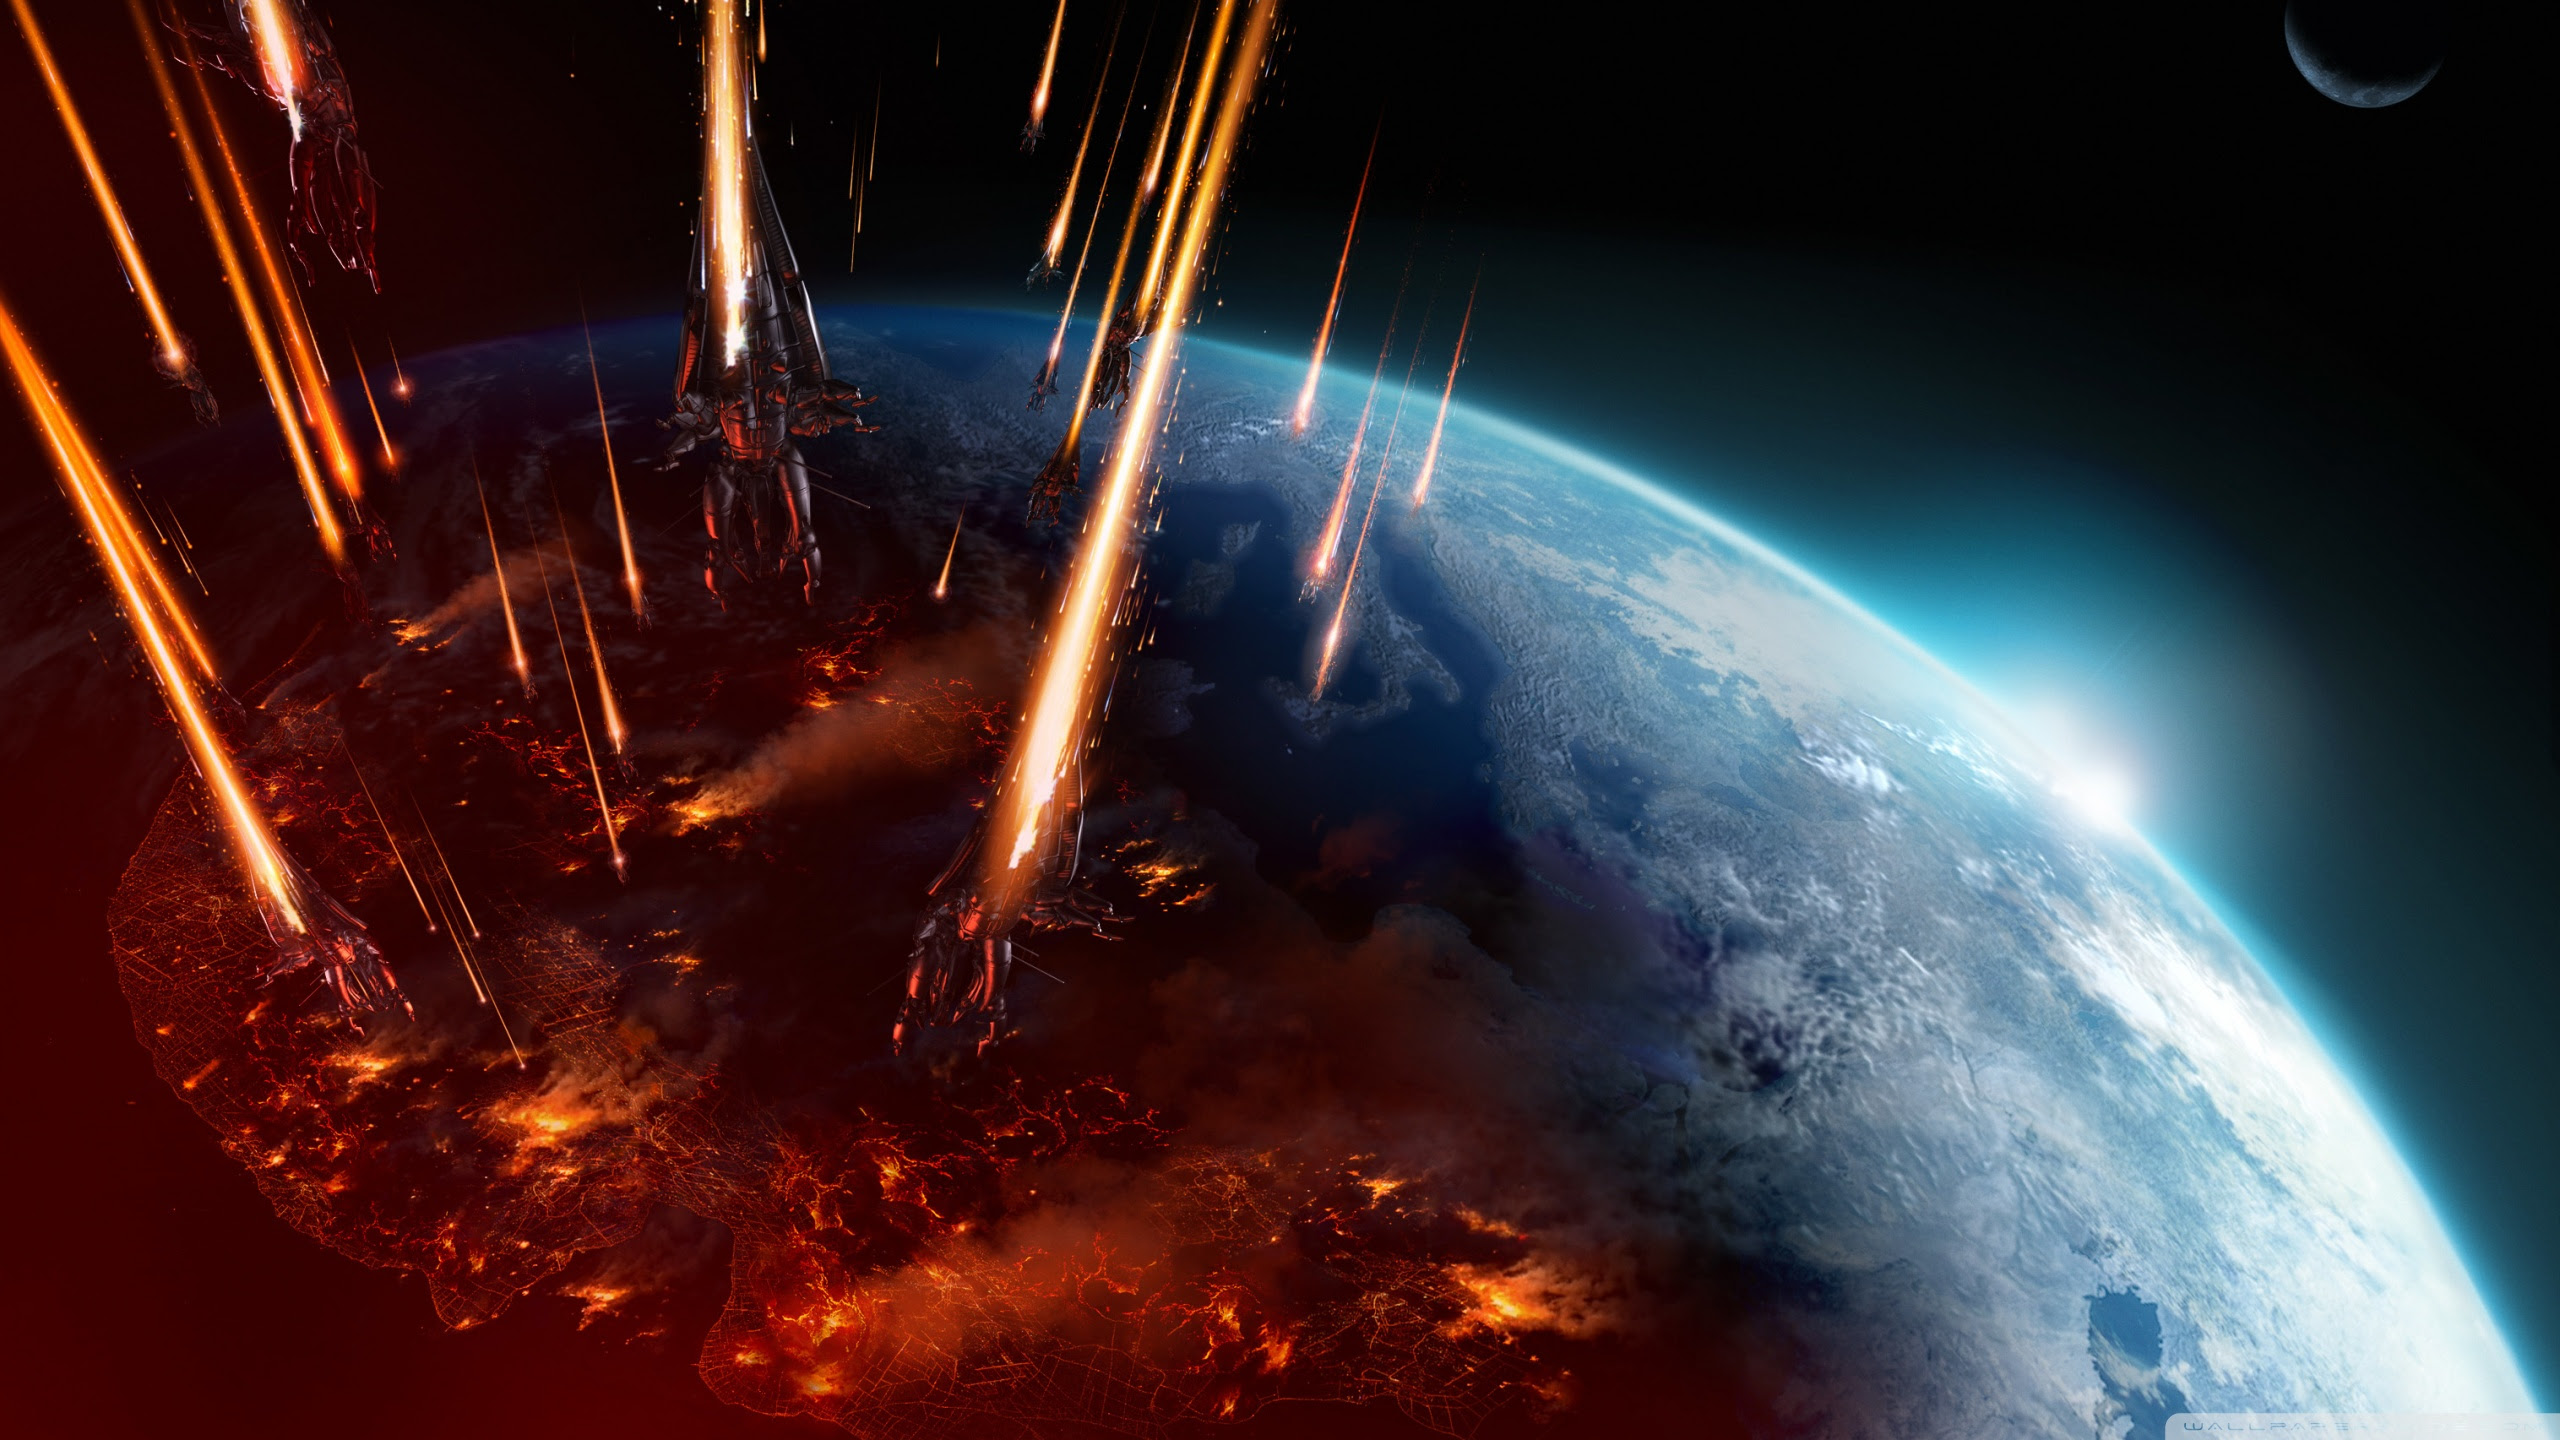 Mass Effect 3 Earth Attack Ultra Hd Desktop Background Wallpaper